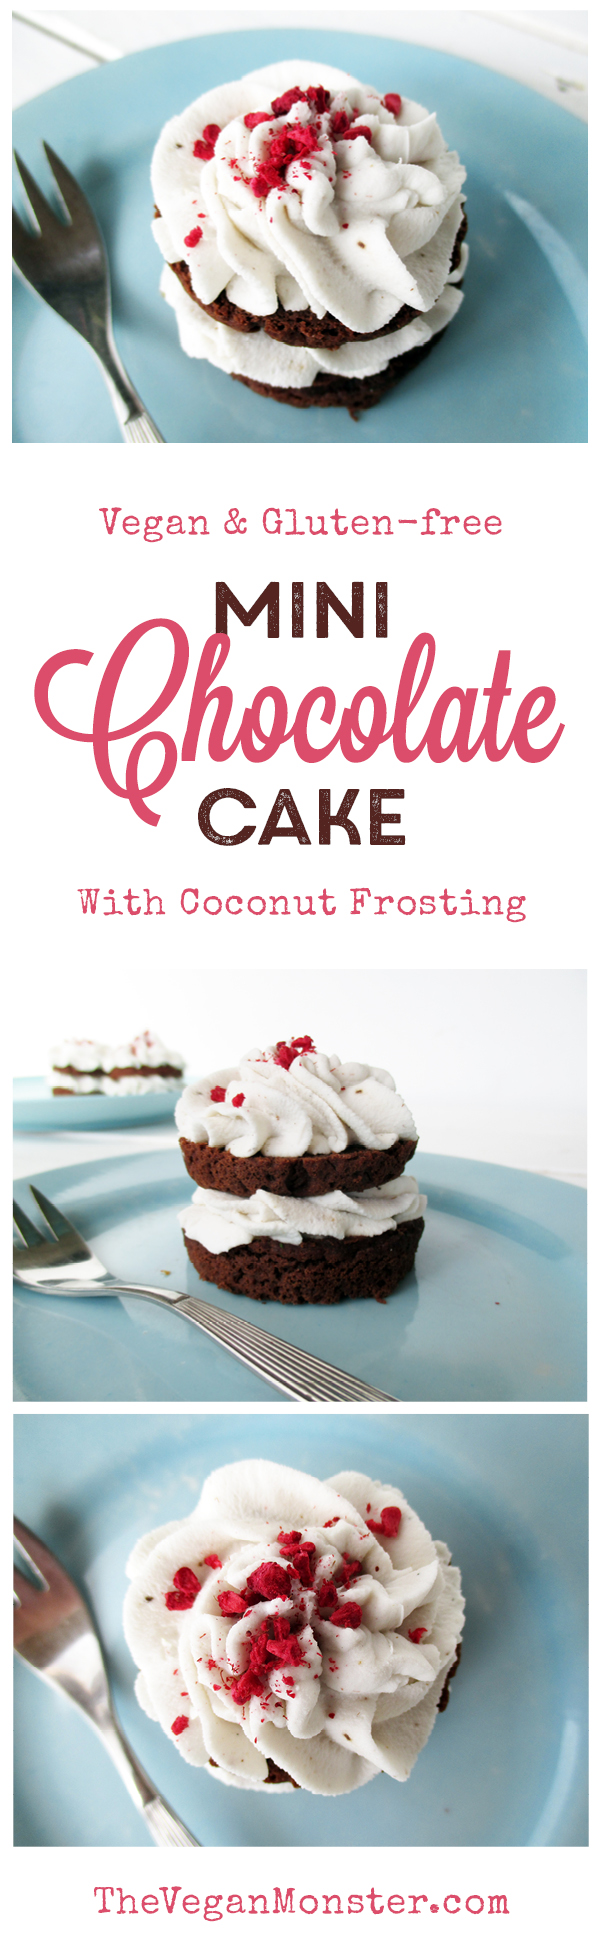 Vegan Gluten-free Mini Chocolate Cakes And Coconut Frosting Without Refined Sugar Recipe